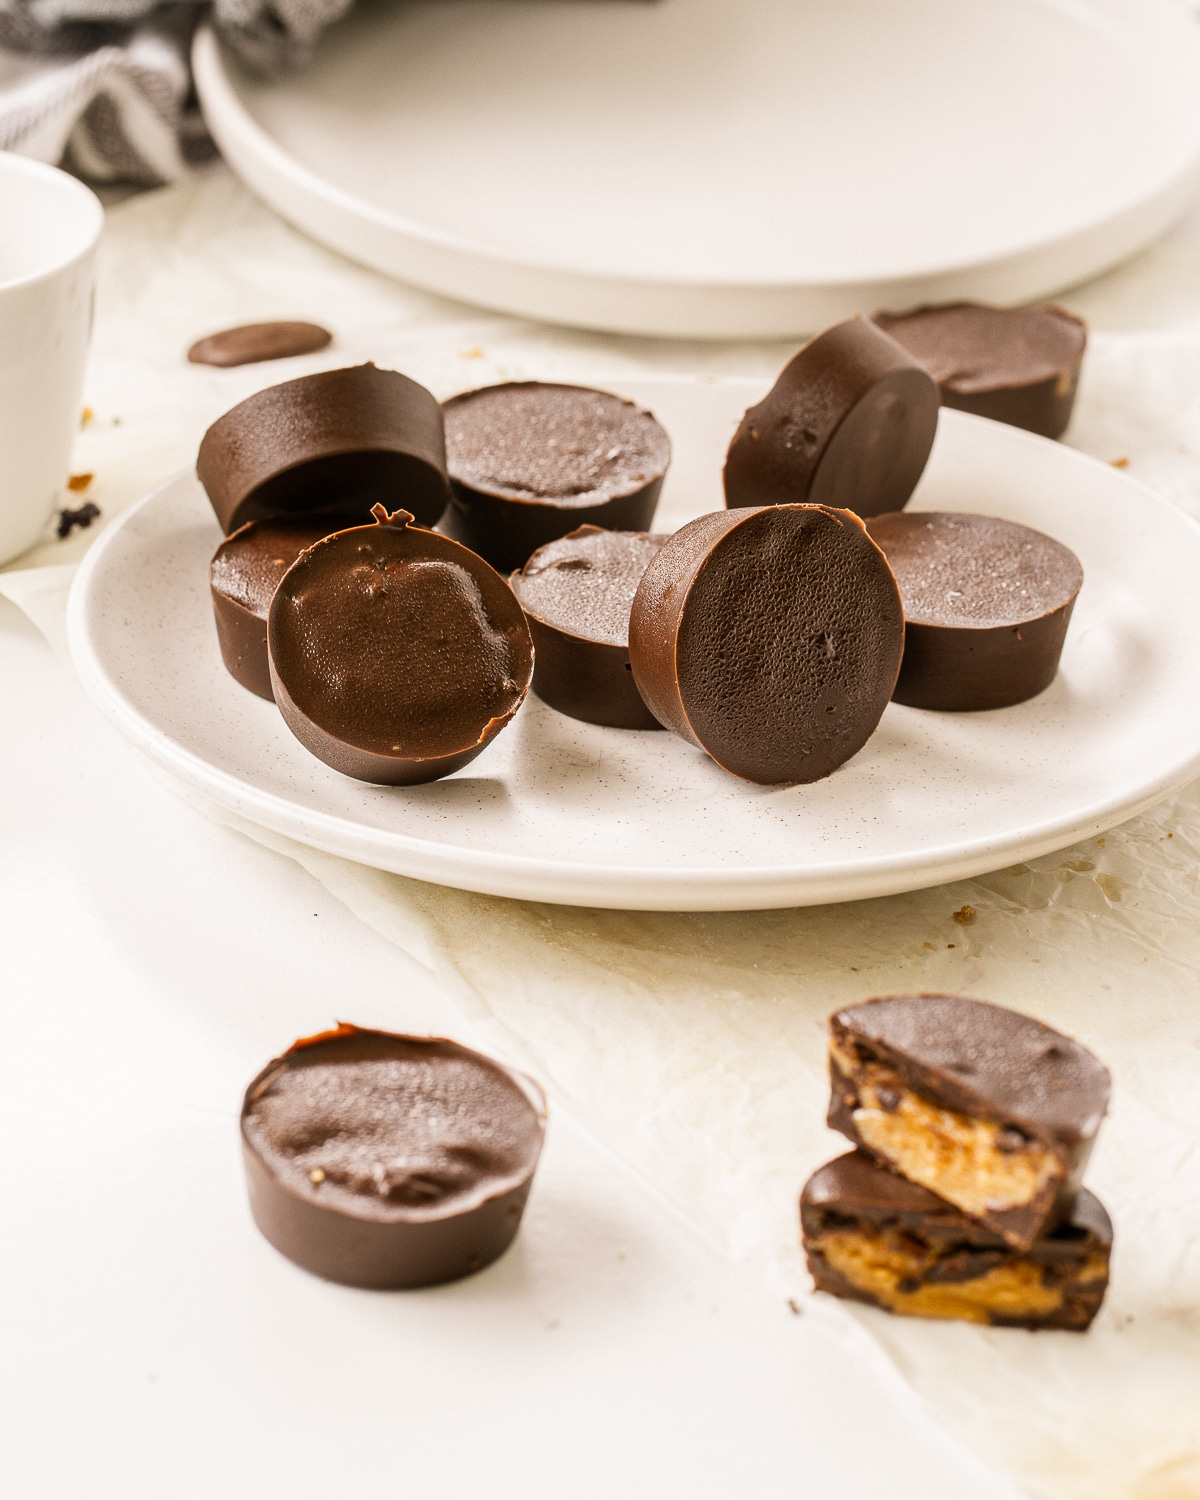 With just 6 simple ingredients, these Homemade Chocolate Peanut Butter Cups are delicious, gluten free, dairy free, vegan, sugar free, low carb and keto friendly!